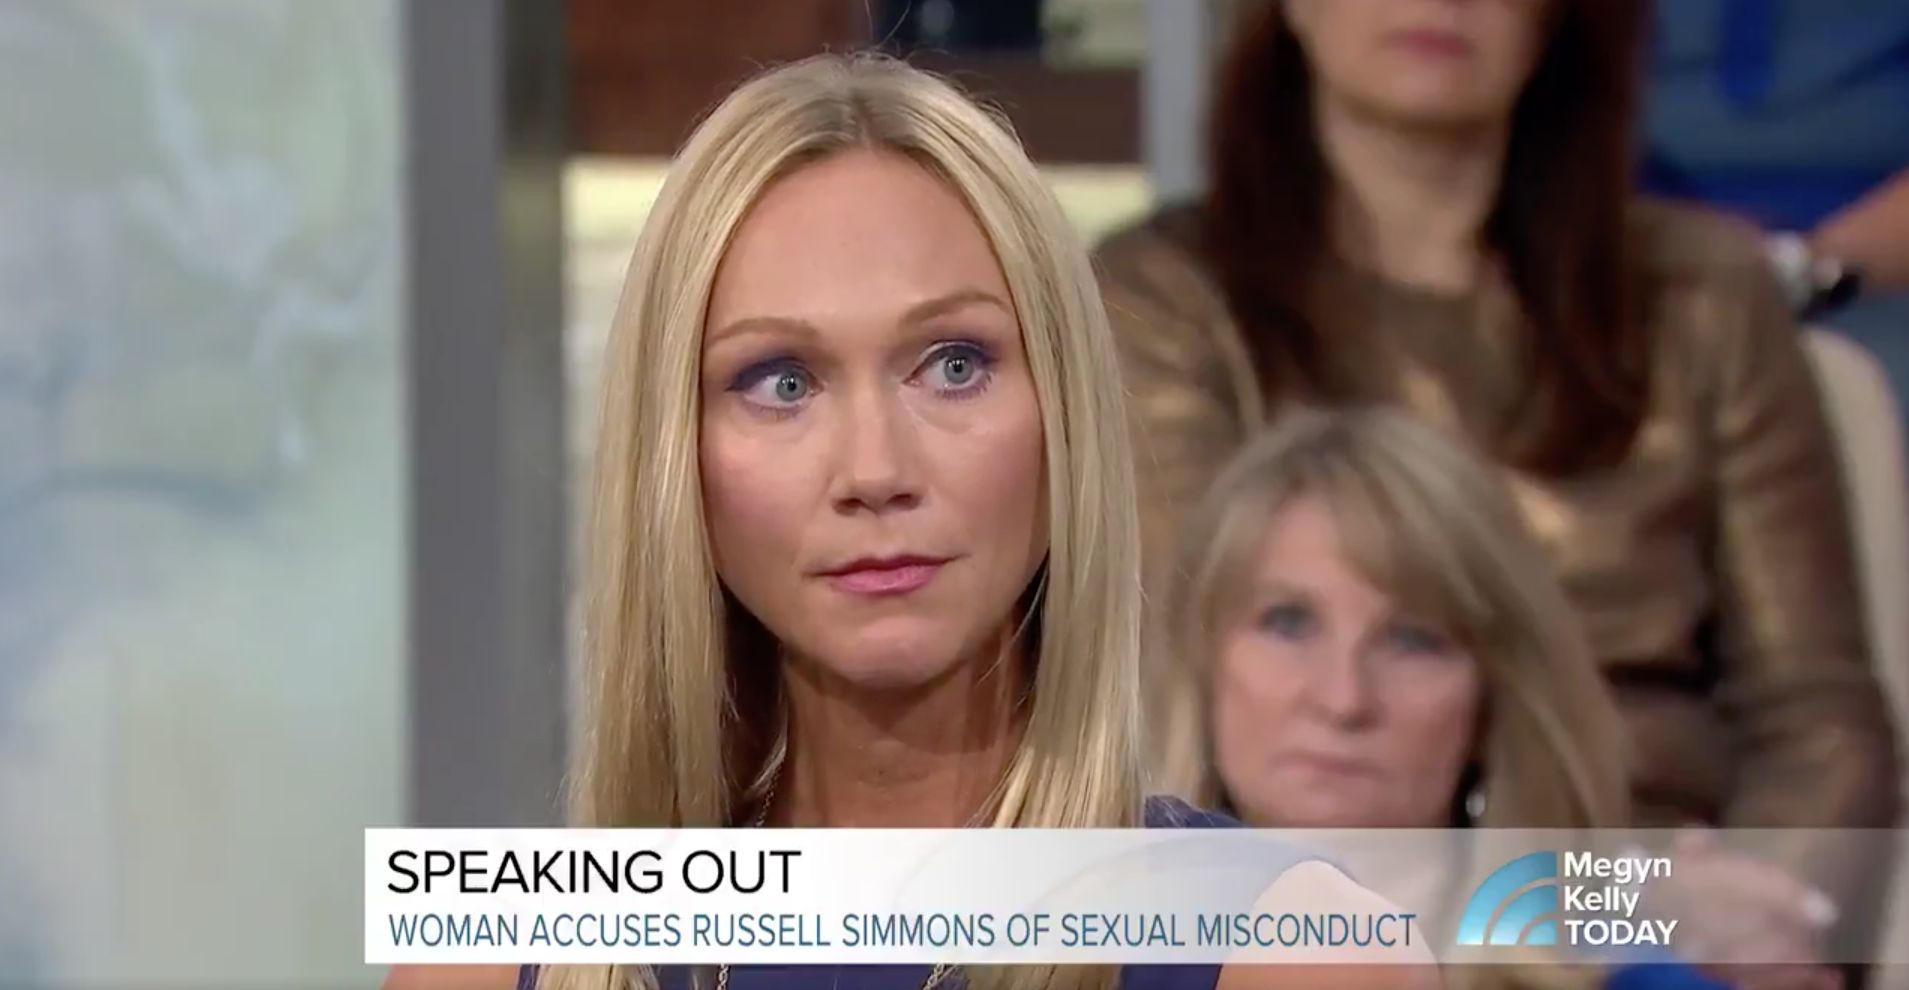 Jennifer Jarosik who filed a 5 million lawsuit against Russell Simmons last week said that she was twice sexually assaulted by the media mogul